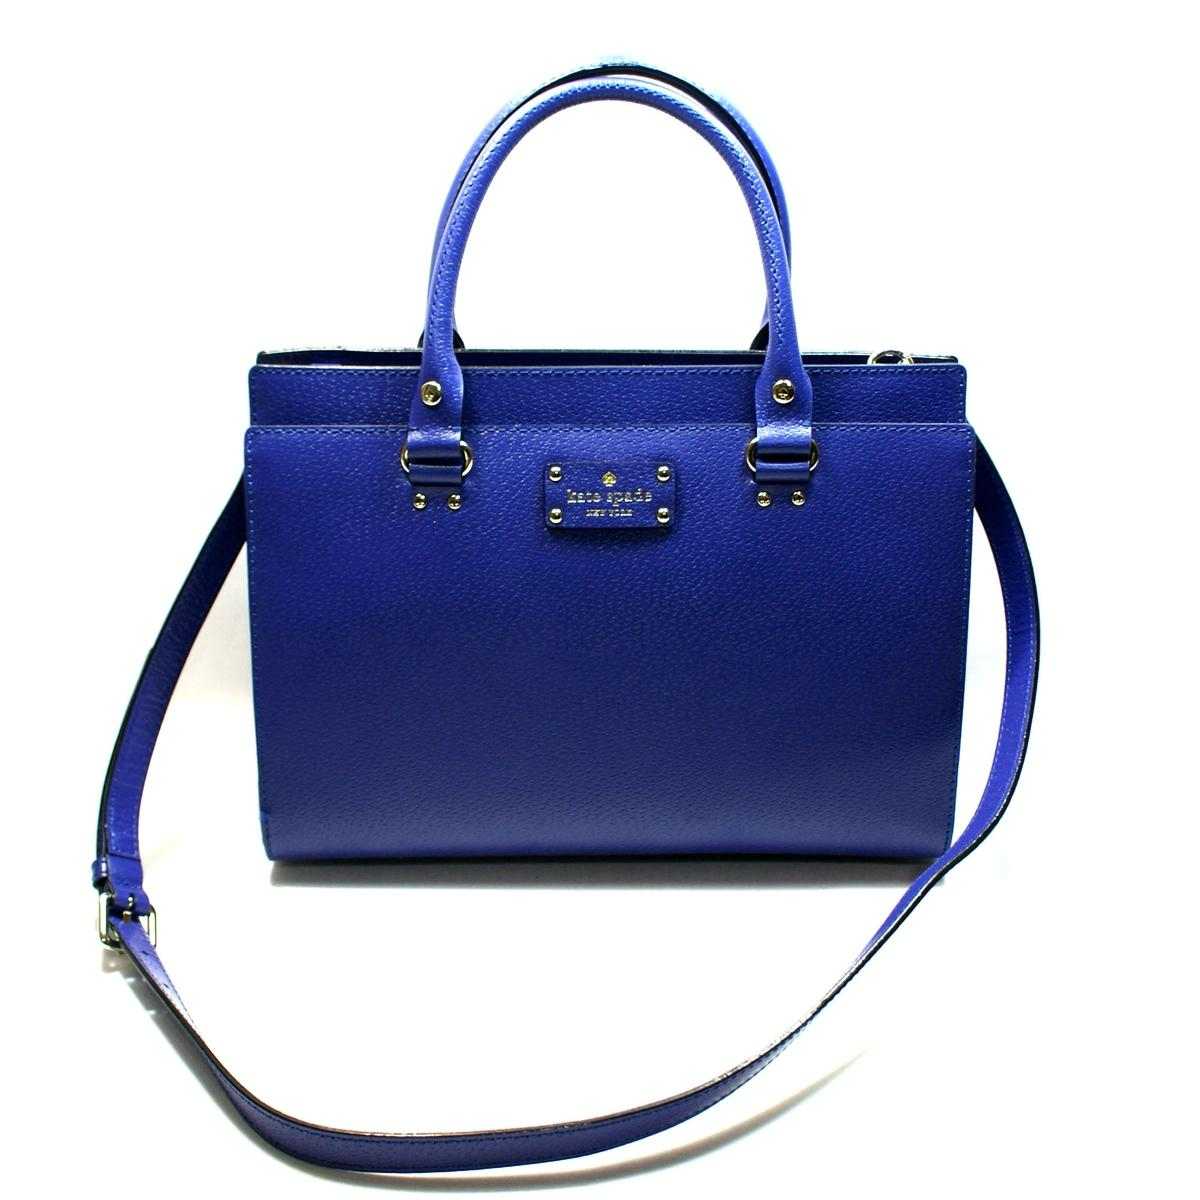 78ce05e534bba1 Home · Kate Spade · Durham Wellesley Leather Emperor Blue Satchel/ Crossbody  Bag. CLICK THUMBNAIL TO ZOOM. Found ...